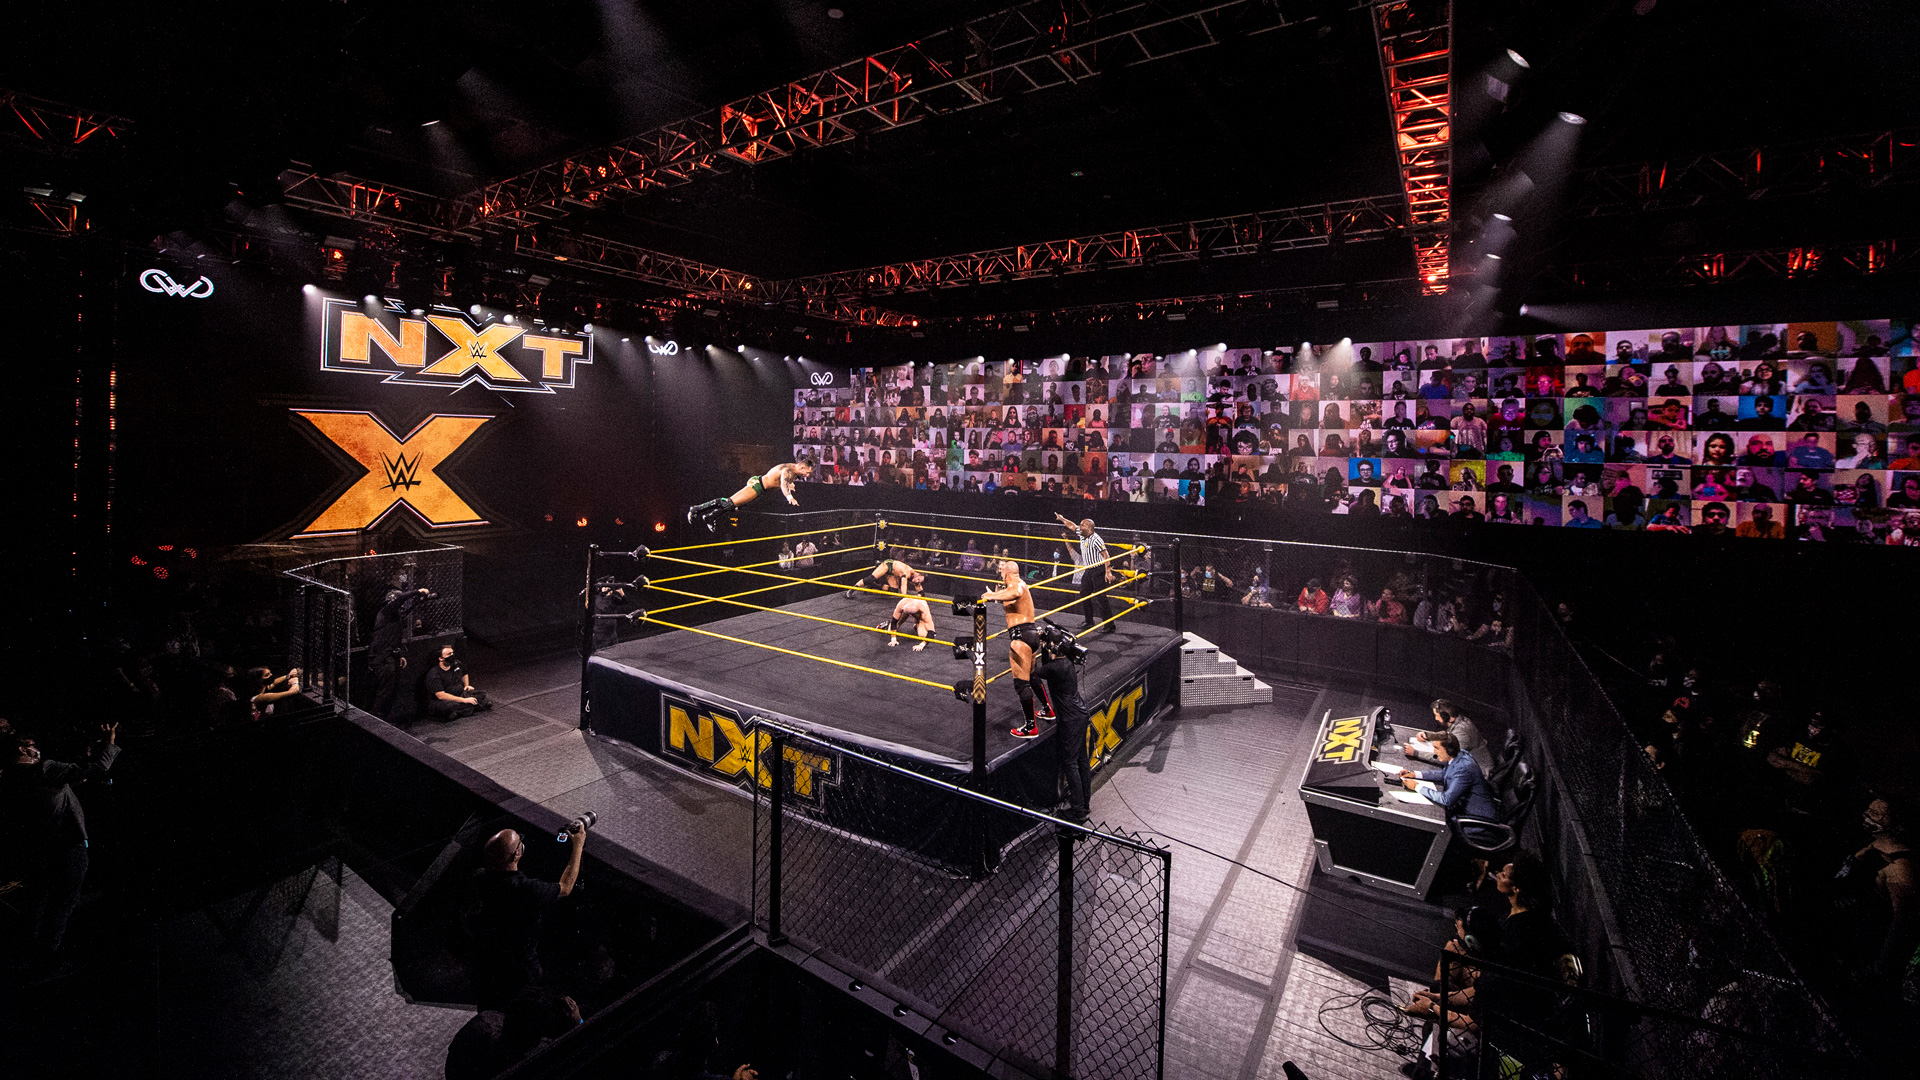 NXT began airing on USA Network in September 2019.